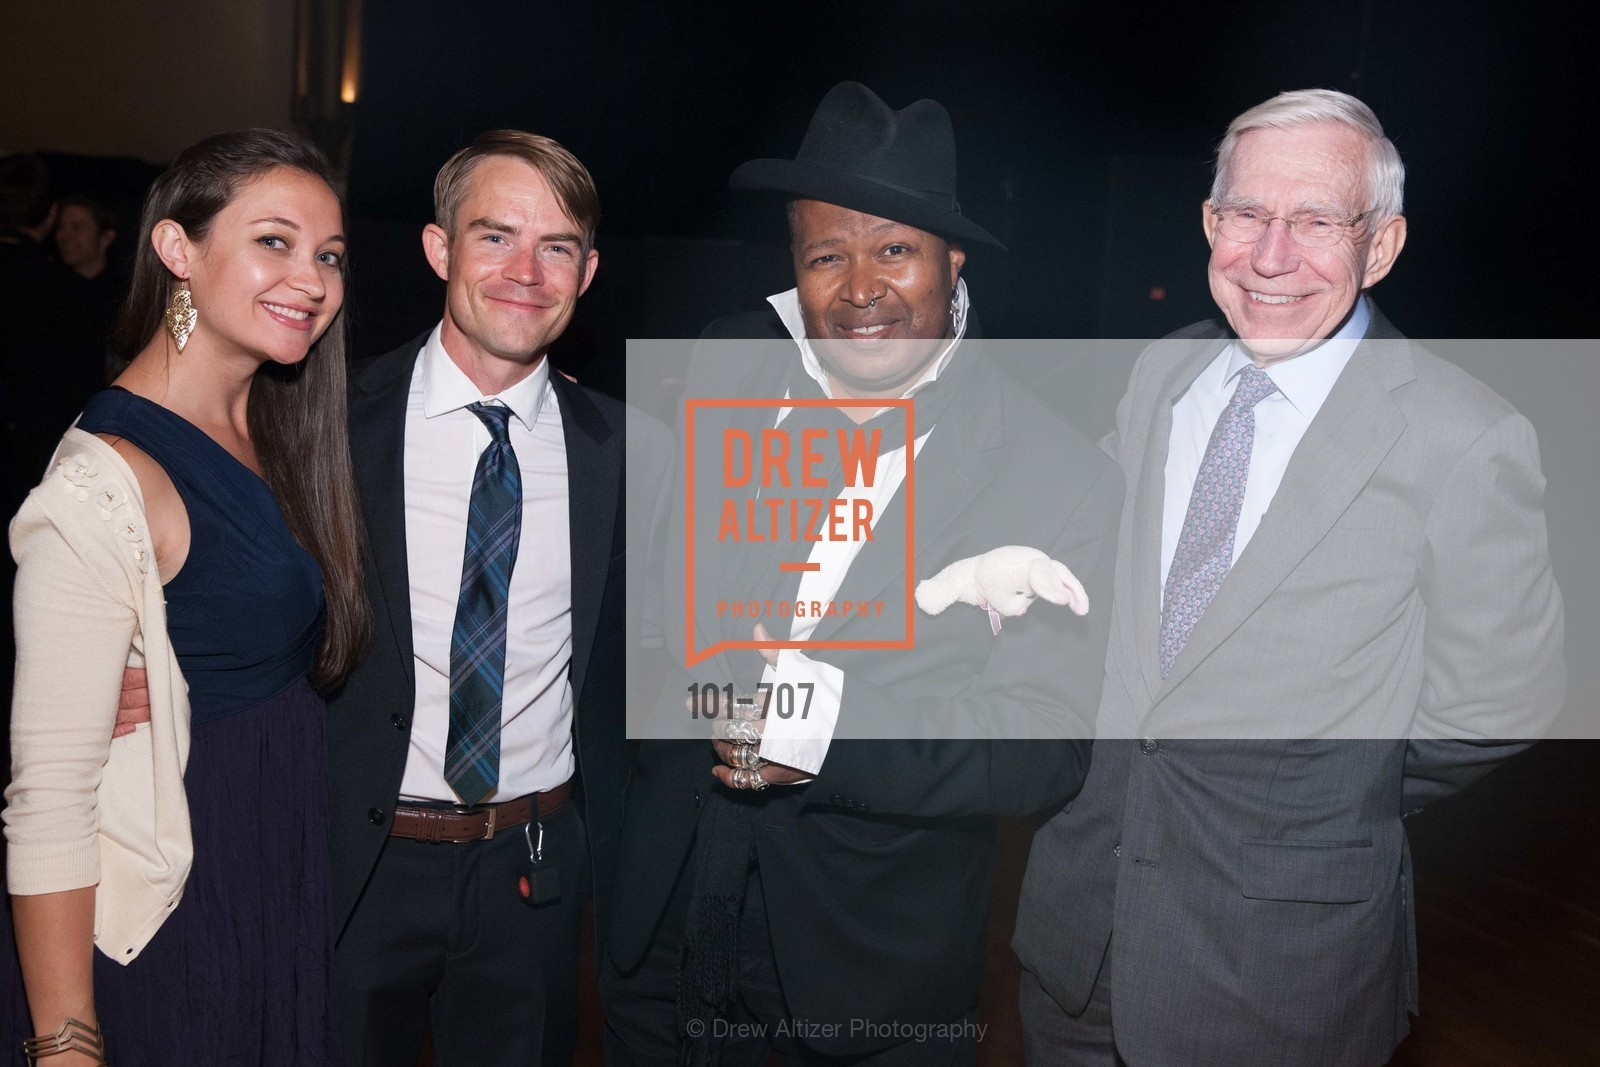 Arlyle Schultz, Paul Schultz, Reginald Ray Savage, Ambassador Frank Baxter, OAKLAND SCHOOL FOR THE ARTS Gala 2015 with Governor Jerry Brown, US, May 8th, 2015,Drew Altizer, Drew Altizer Photography, full-service agency, private events, San Francisco photographer, photographer california